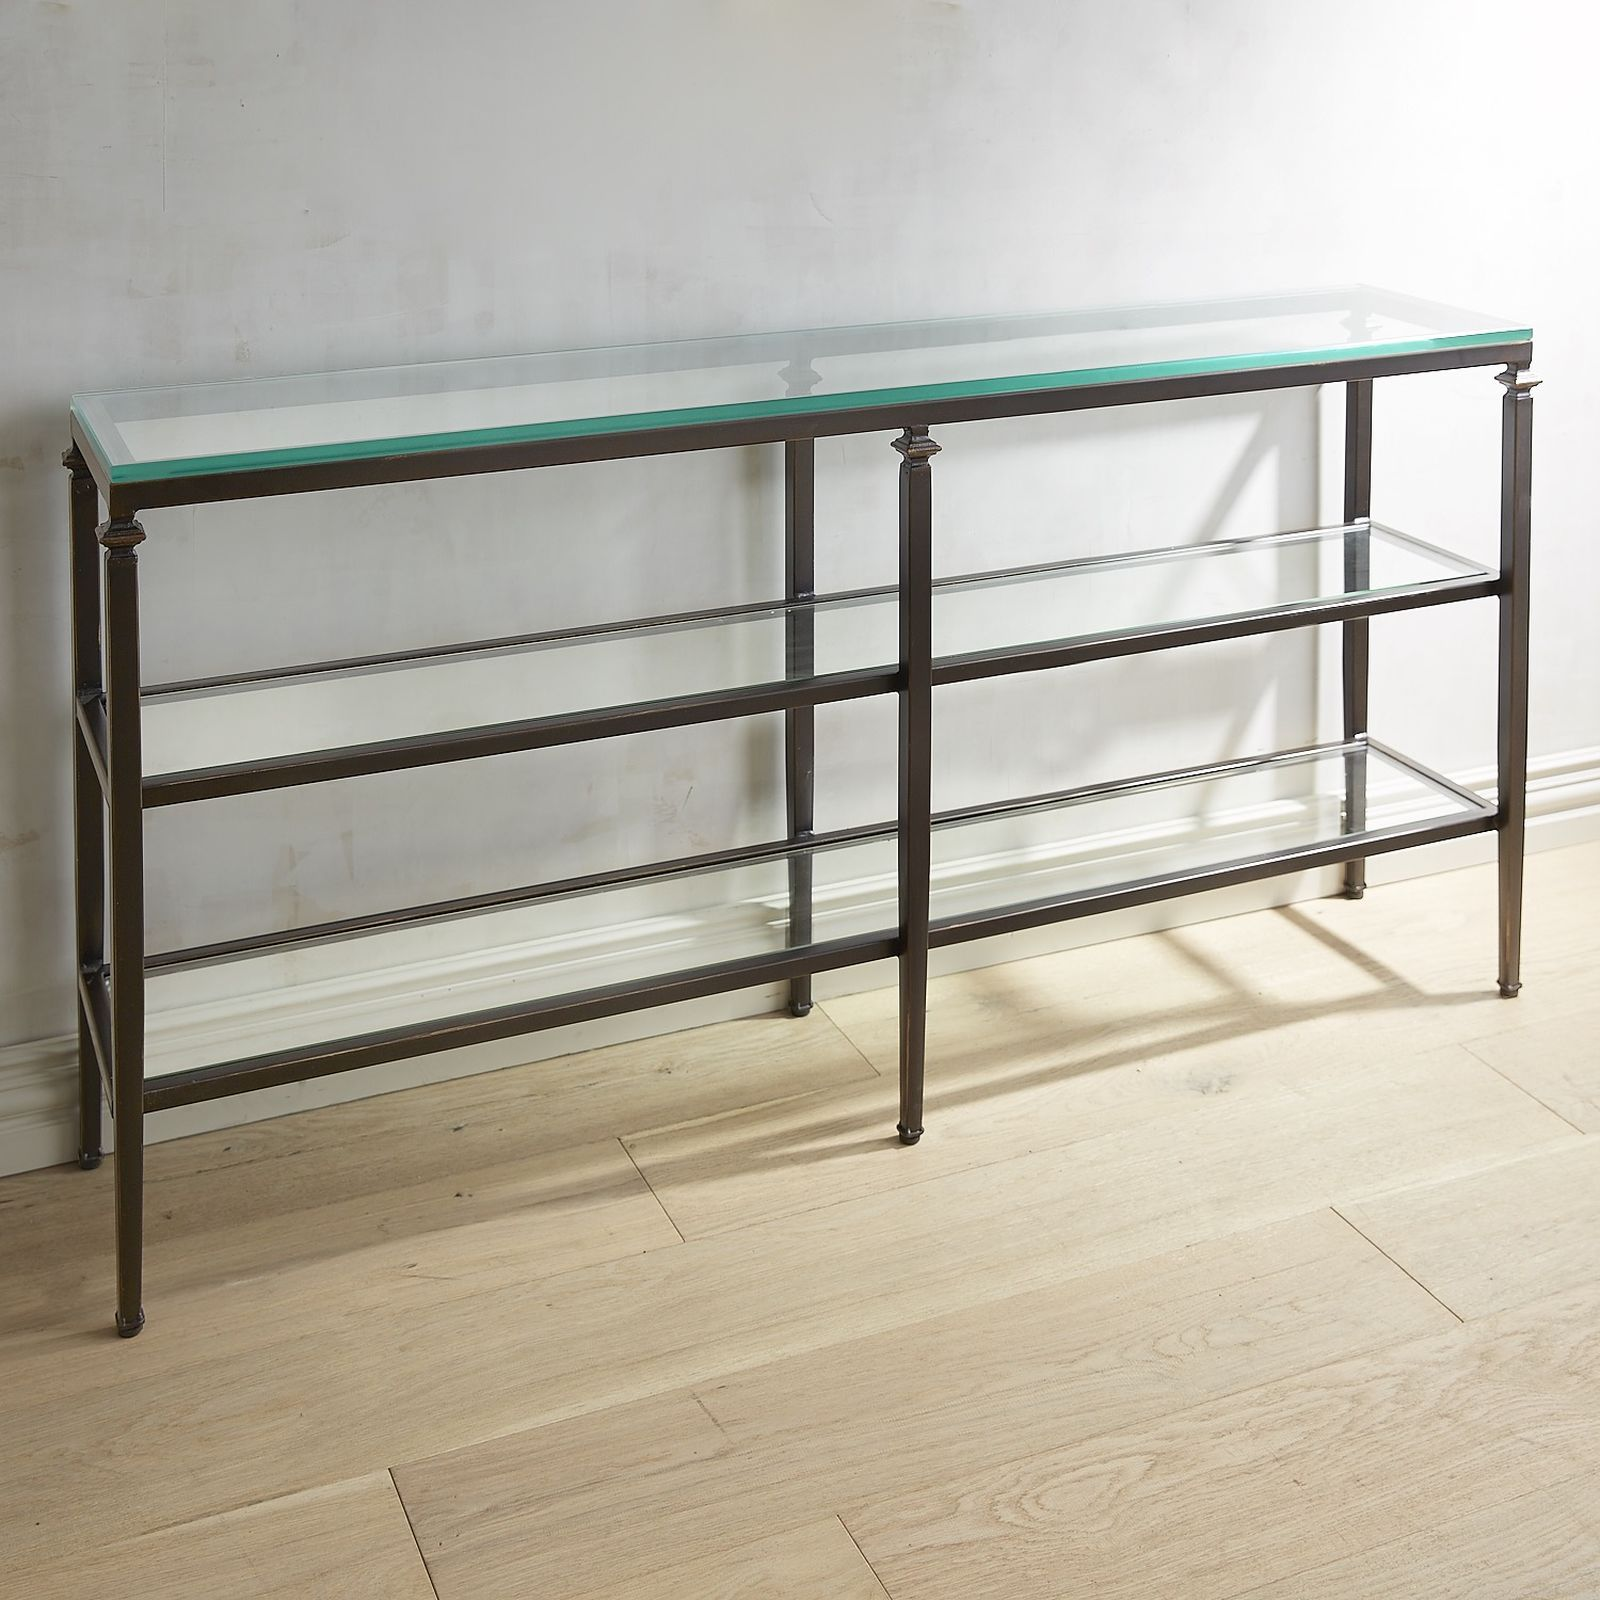 Our Oversized Console Table Has A Slender, Bronze Colored Wrought Iron  Frame And Clear